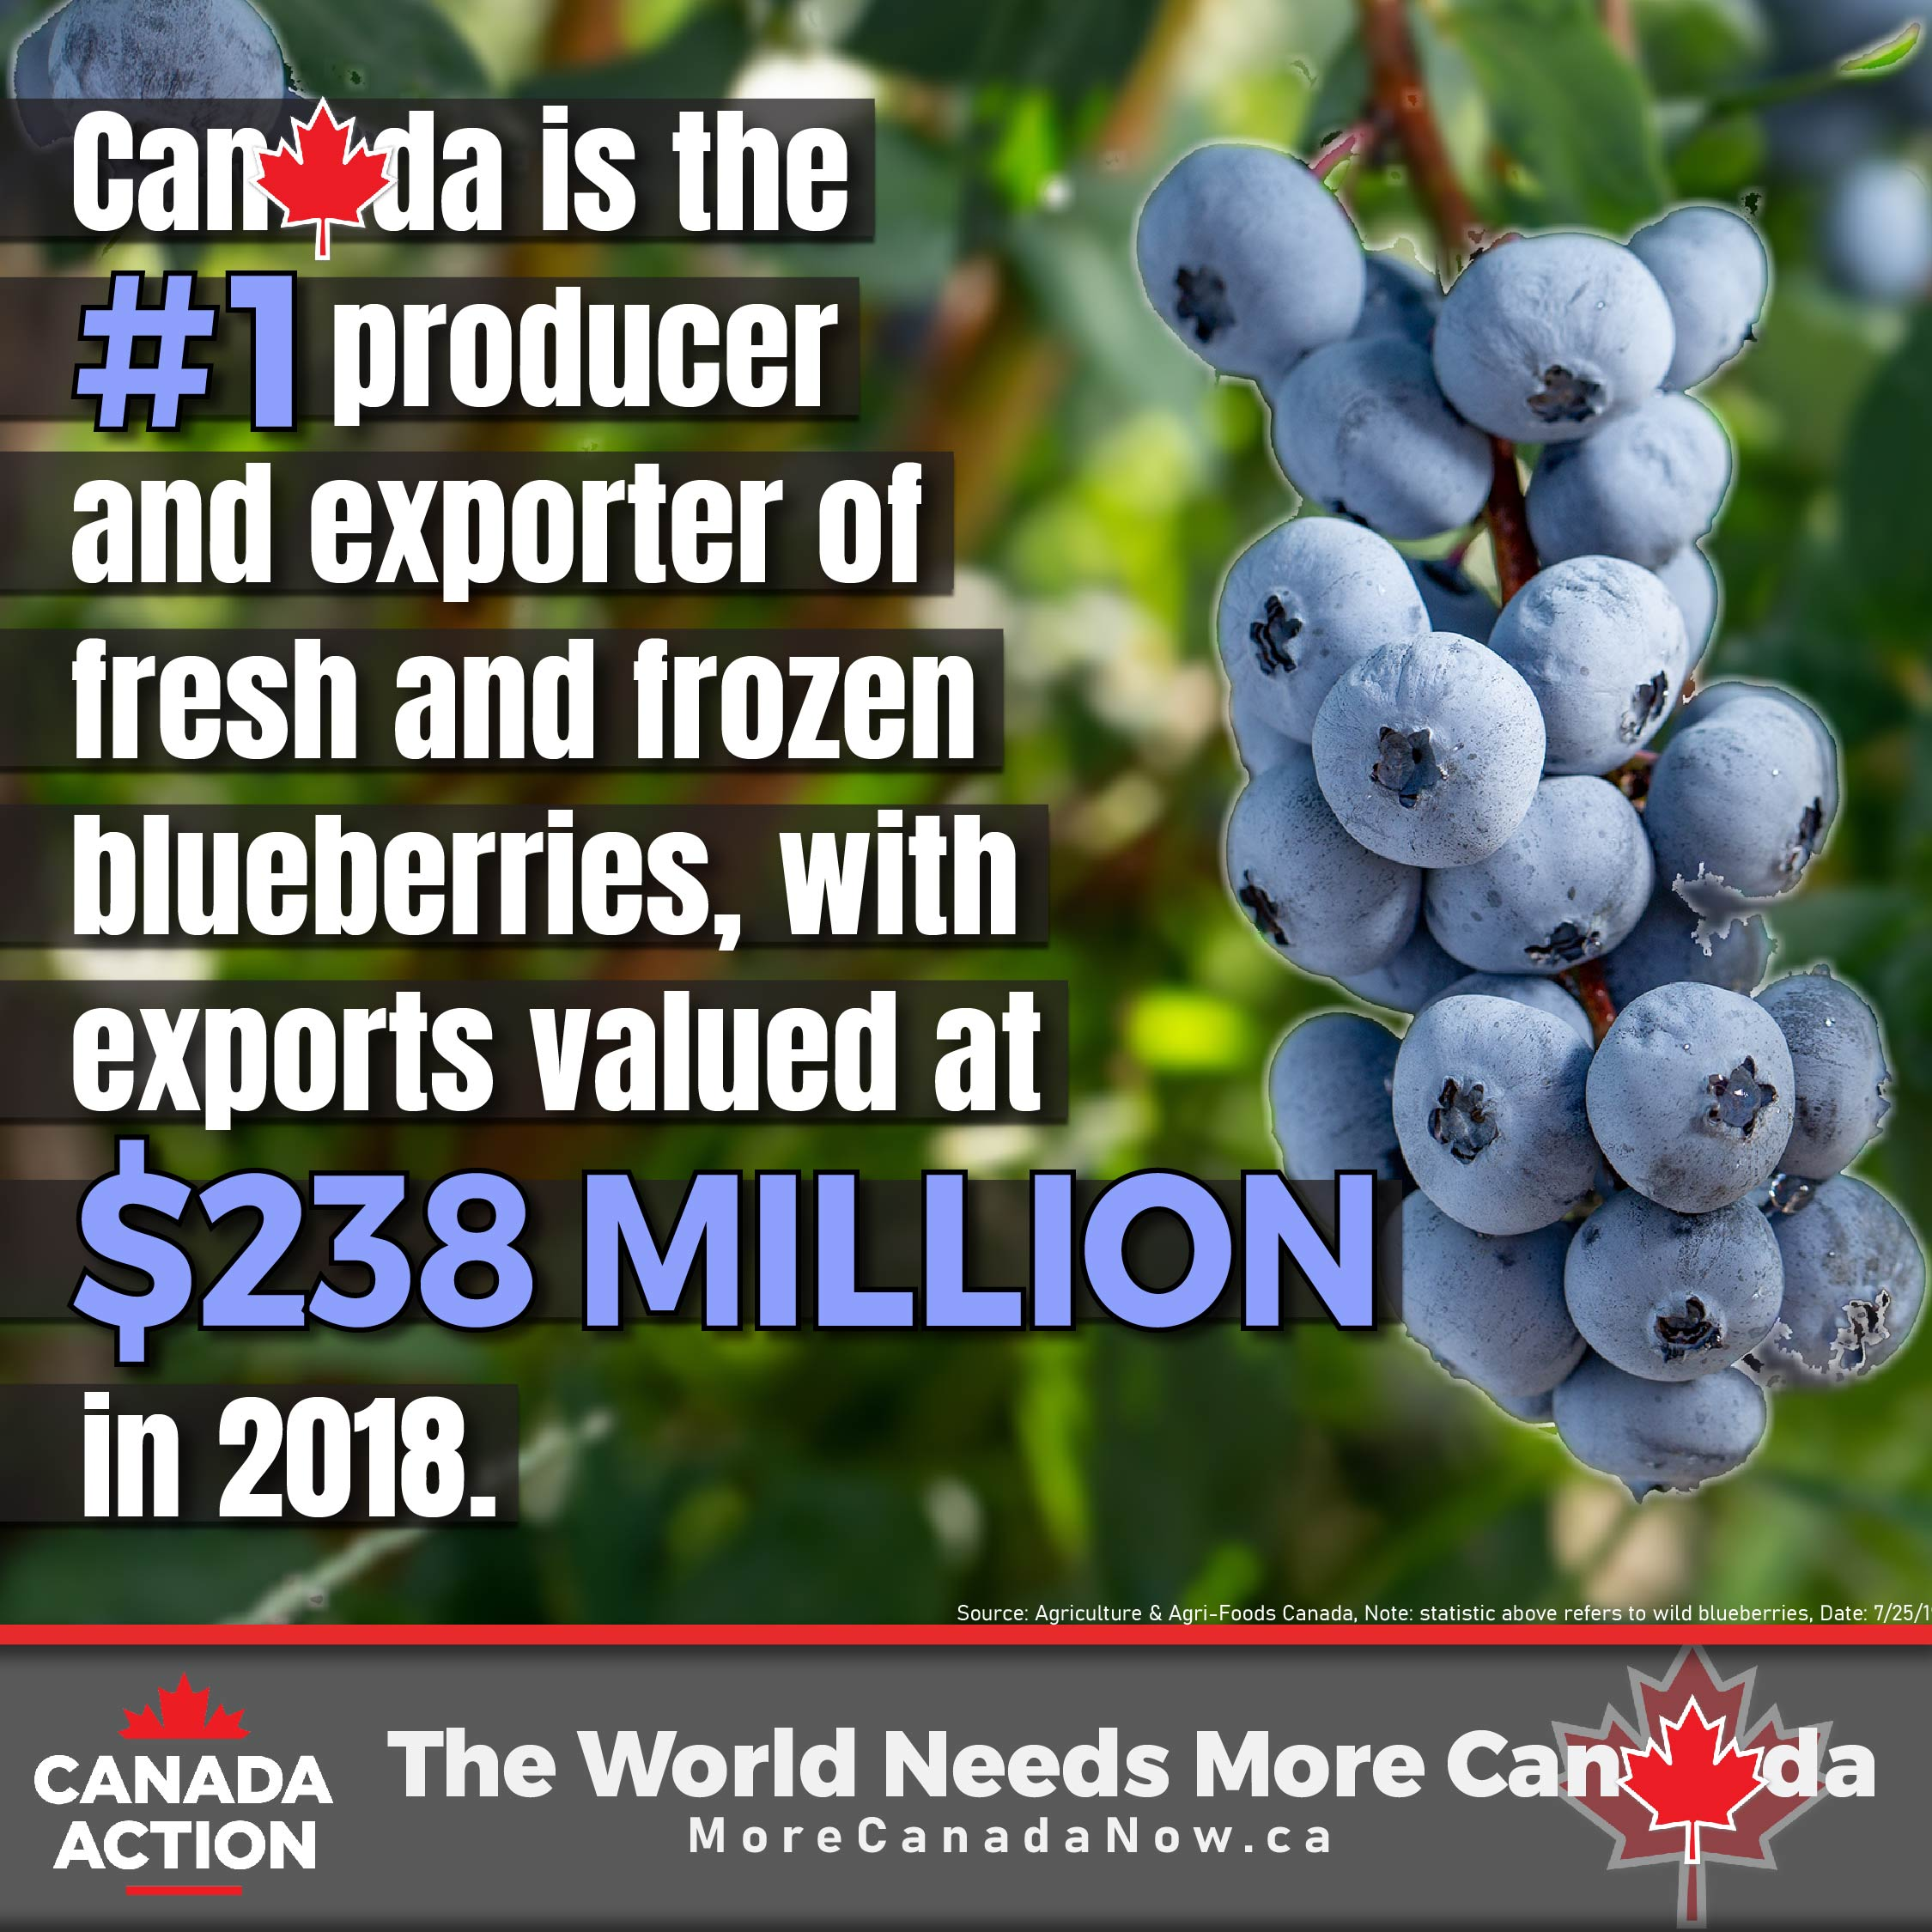 blueberry farming in canada - #1 global producer and exporter fresh frozen blueberries